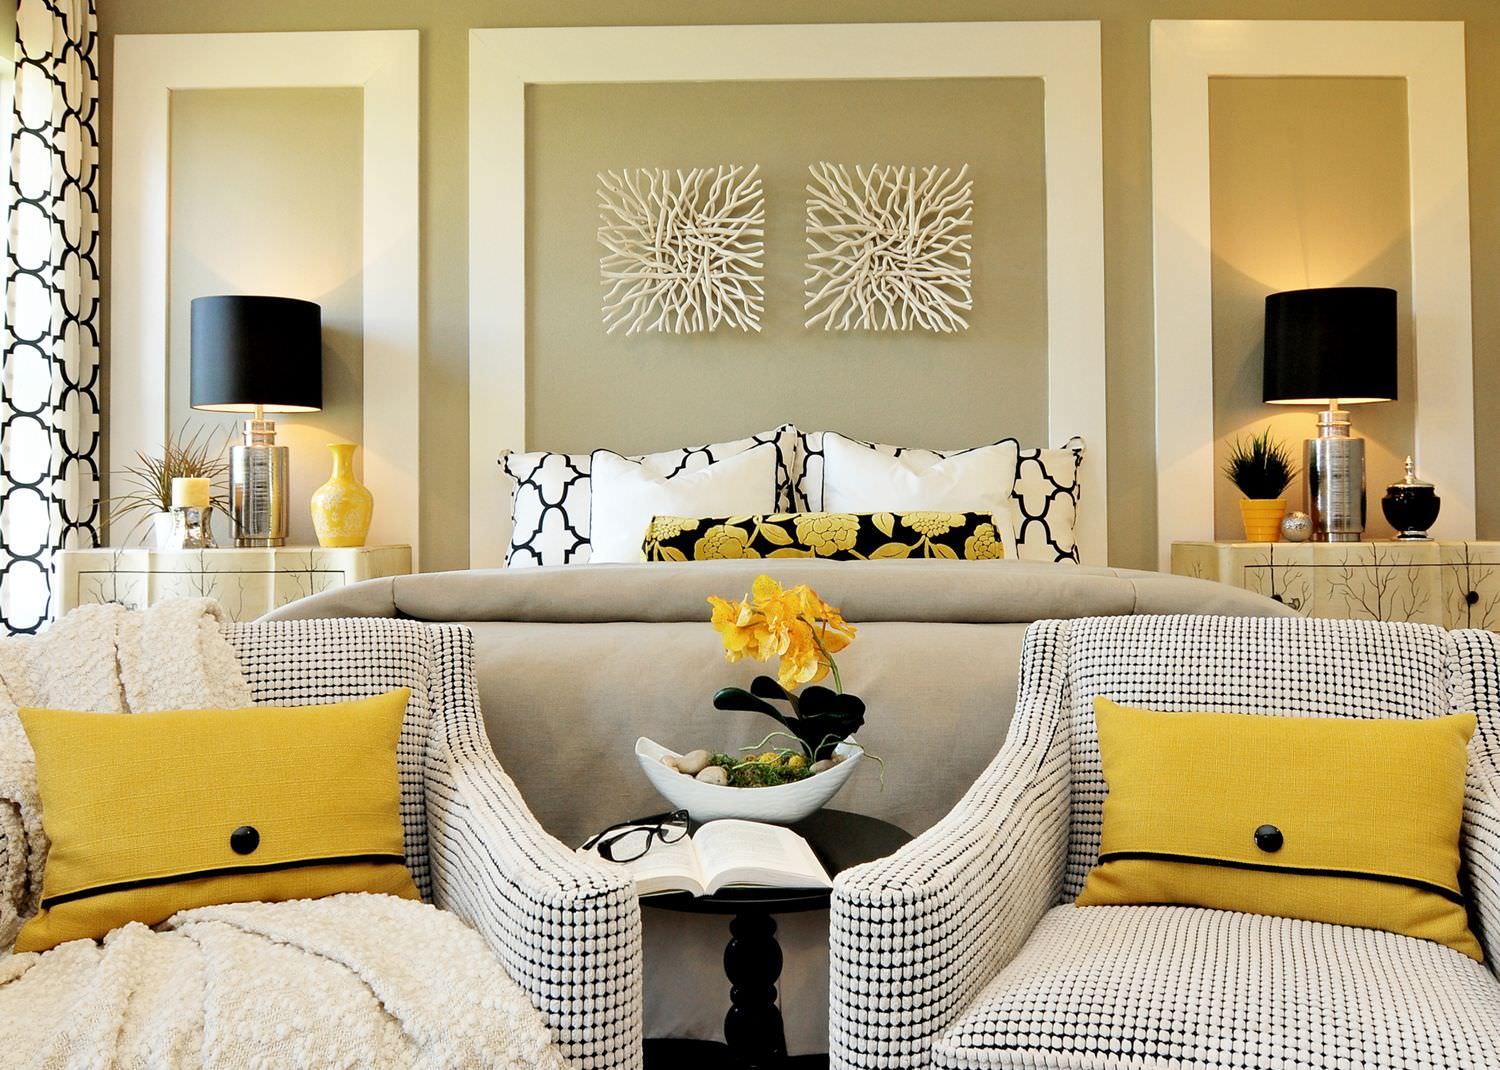 This bedroom would not be the same without yellow details. Using bright color greatly revives the the space and makes it special. The chairs provide a bright sunny spot to read the newspaper or unwind after a long day.